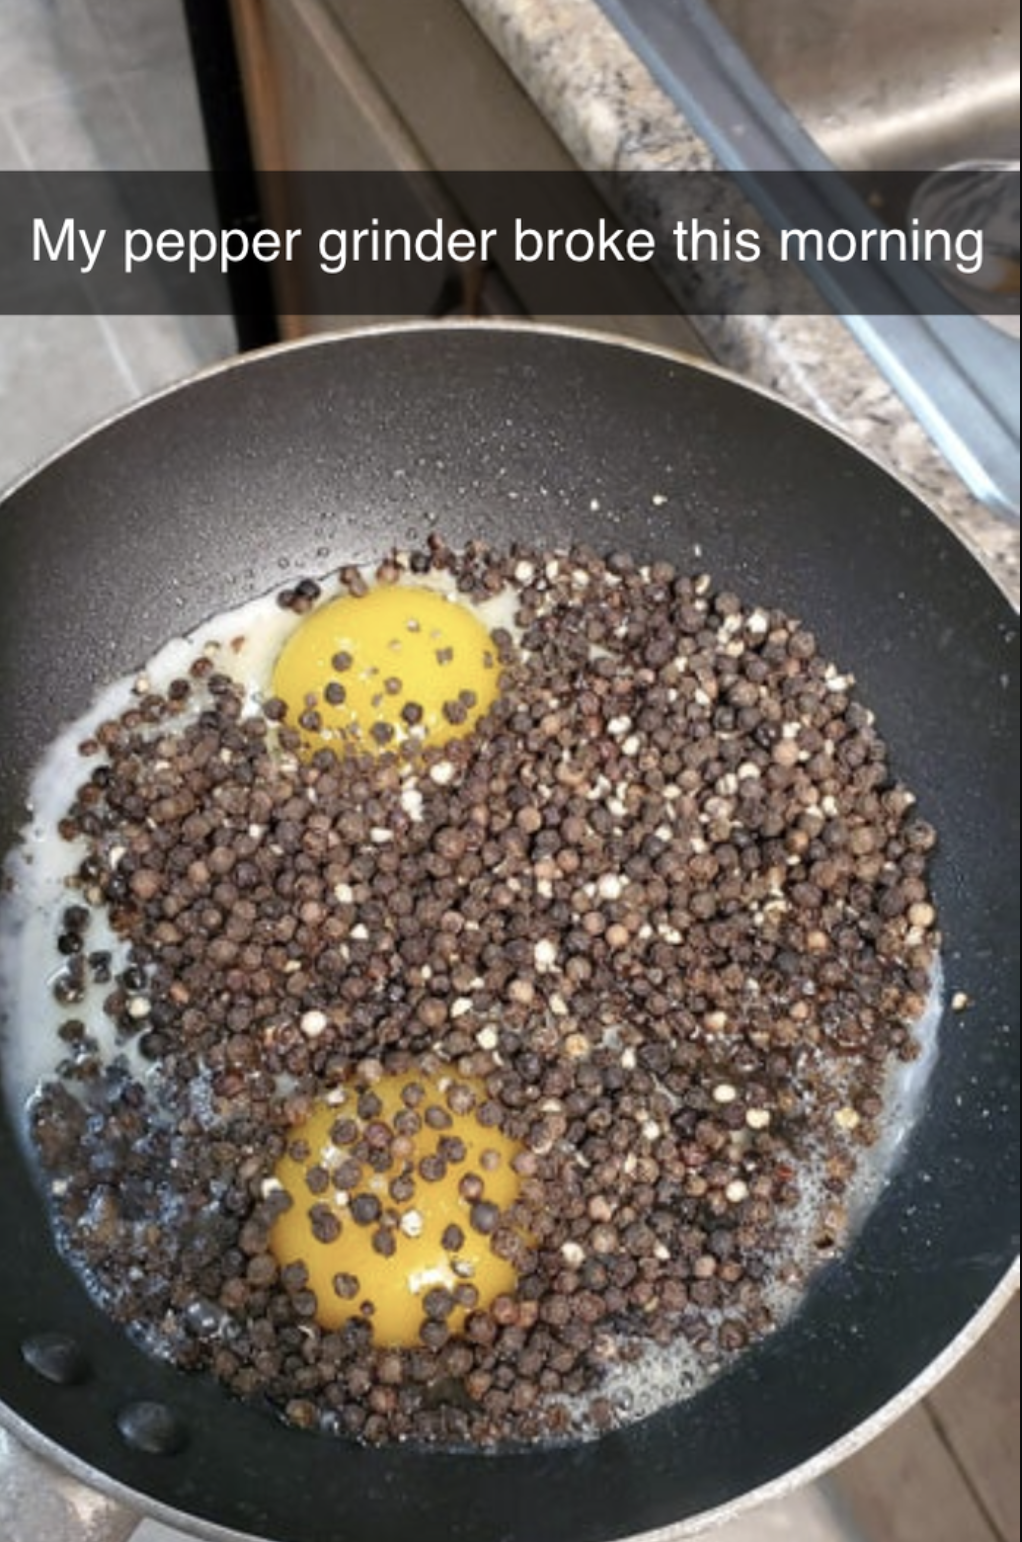 a ton of peppercorns spilled in a frying pan